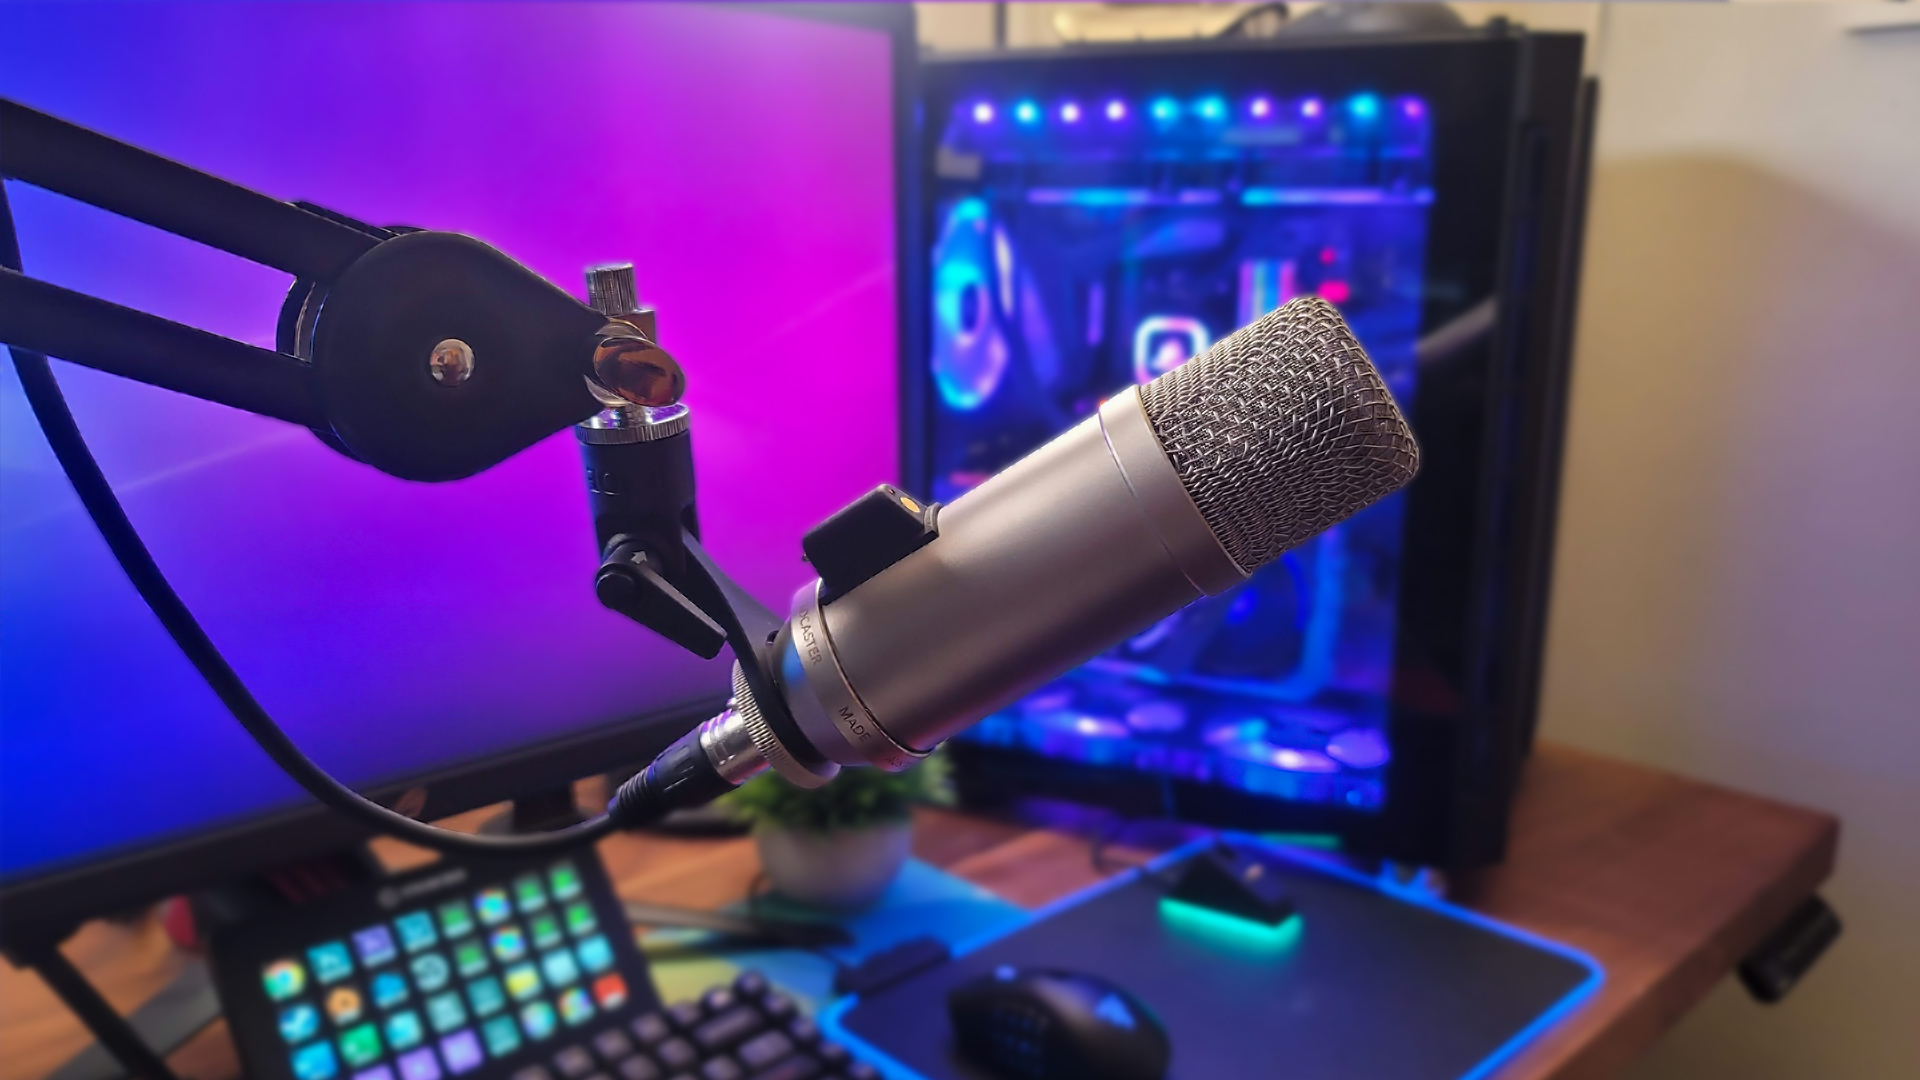 Rode Broadcaster Microphone for Streaming